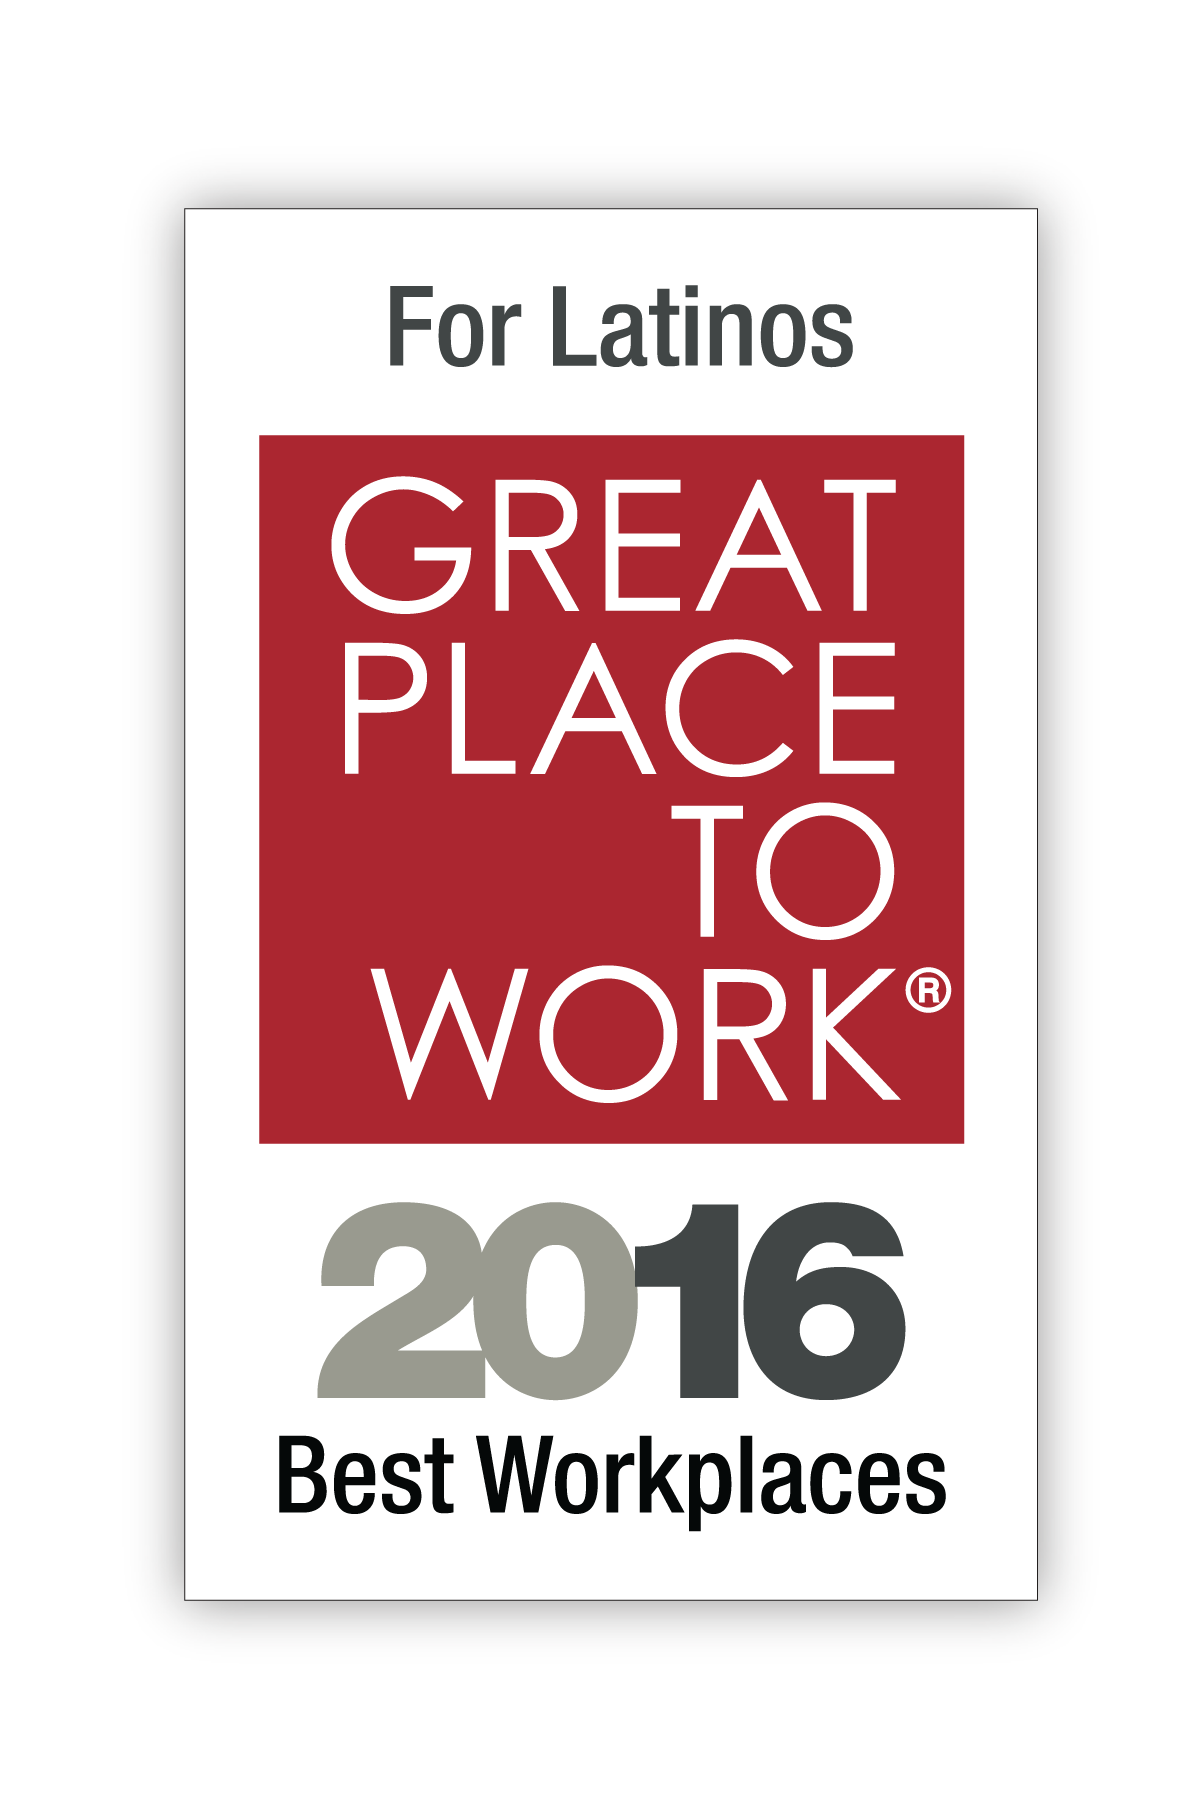 Best Workplaces for Latinos 2016 Image